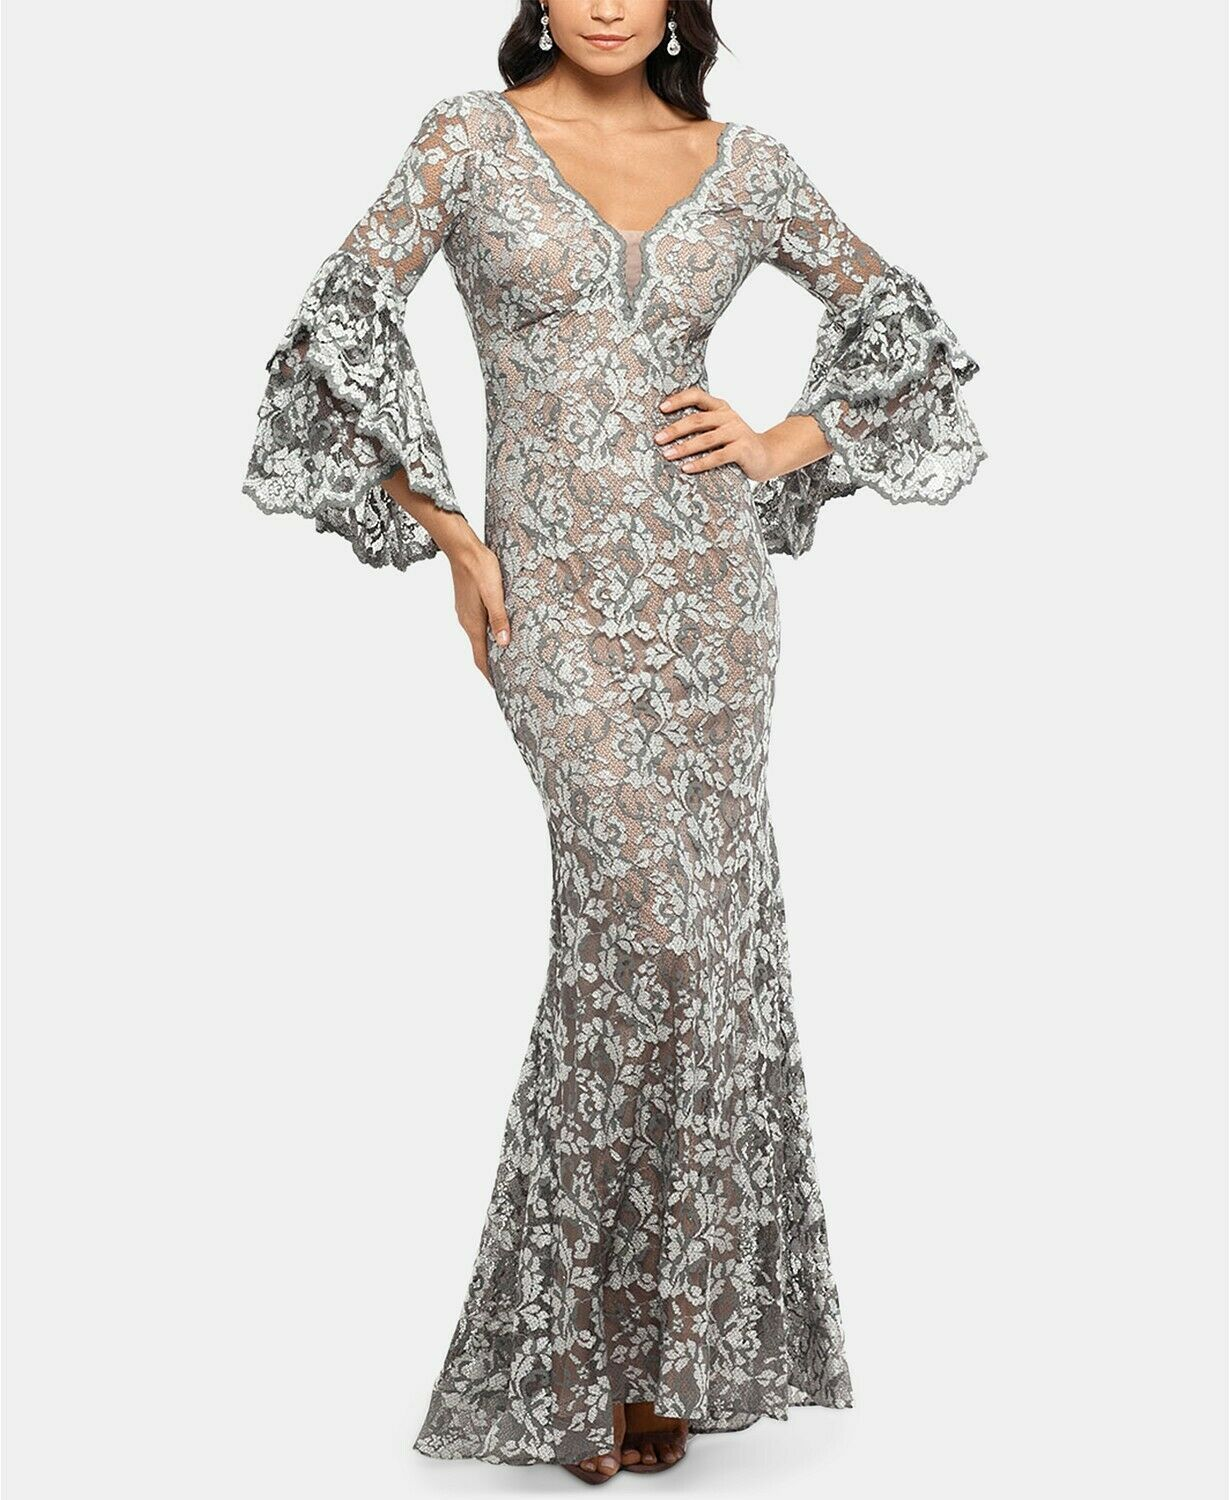 Betsy & Adam Embellished Lace Gown Grey/Nude Plus Size 14W $355